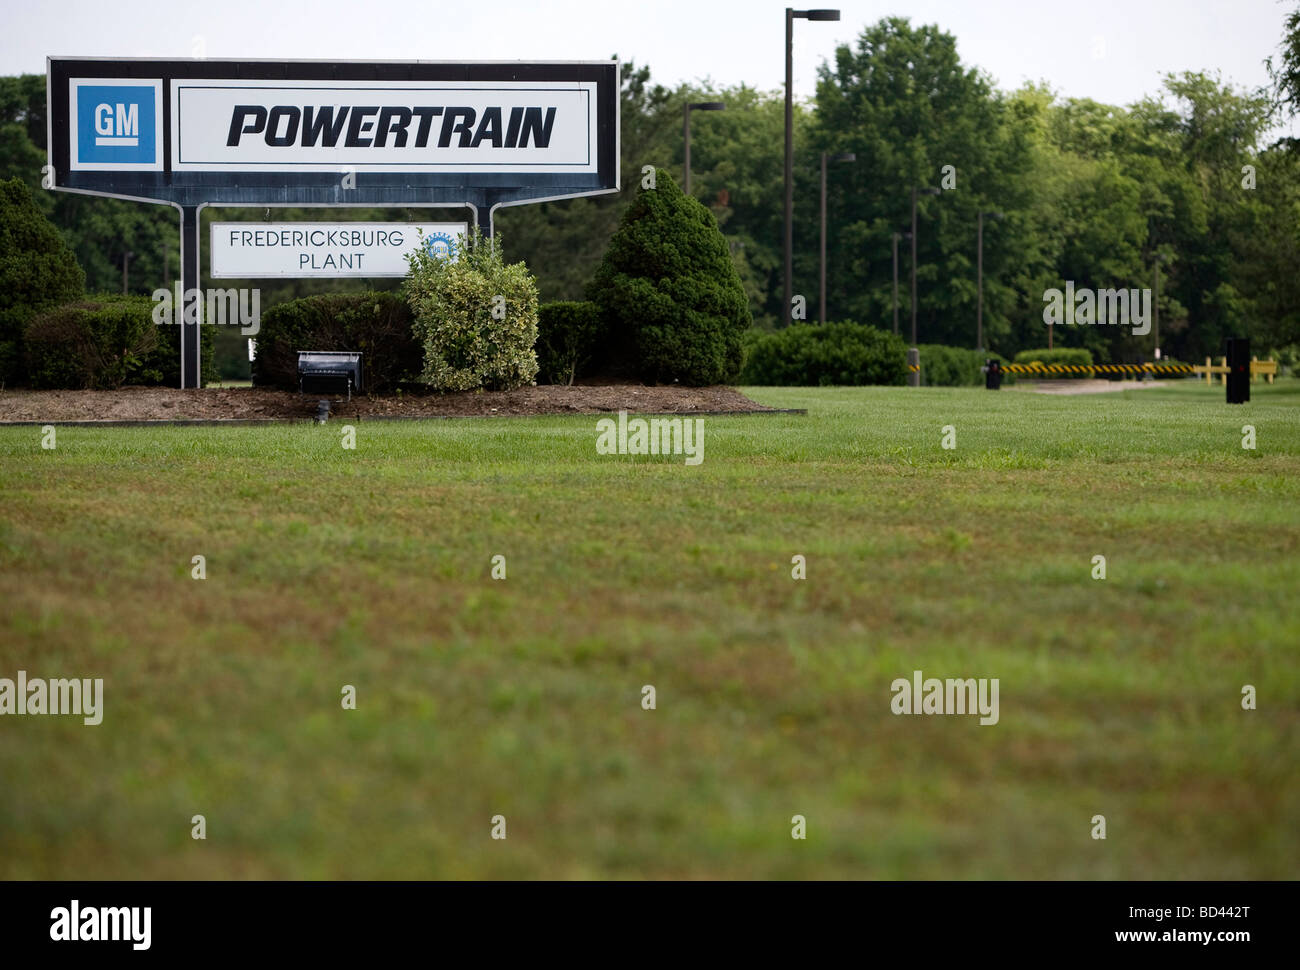 Fredericksburg Powertrain is one of nine GM plants across the country that the now bankrupt General Motors plans - Stock Image